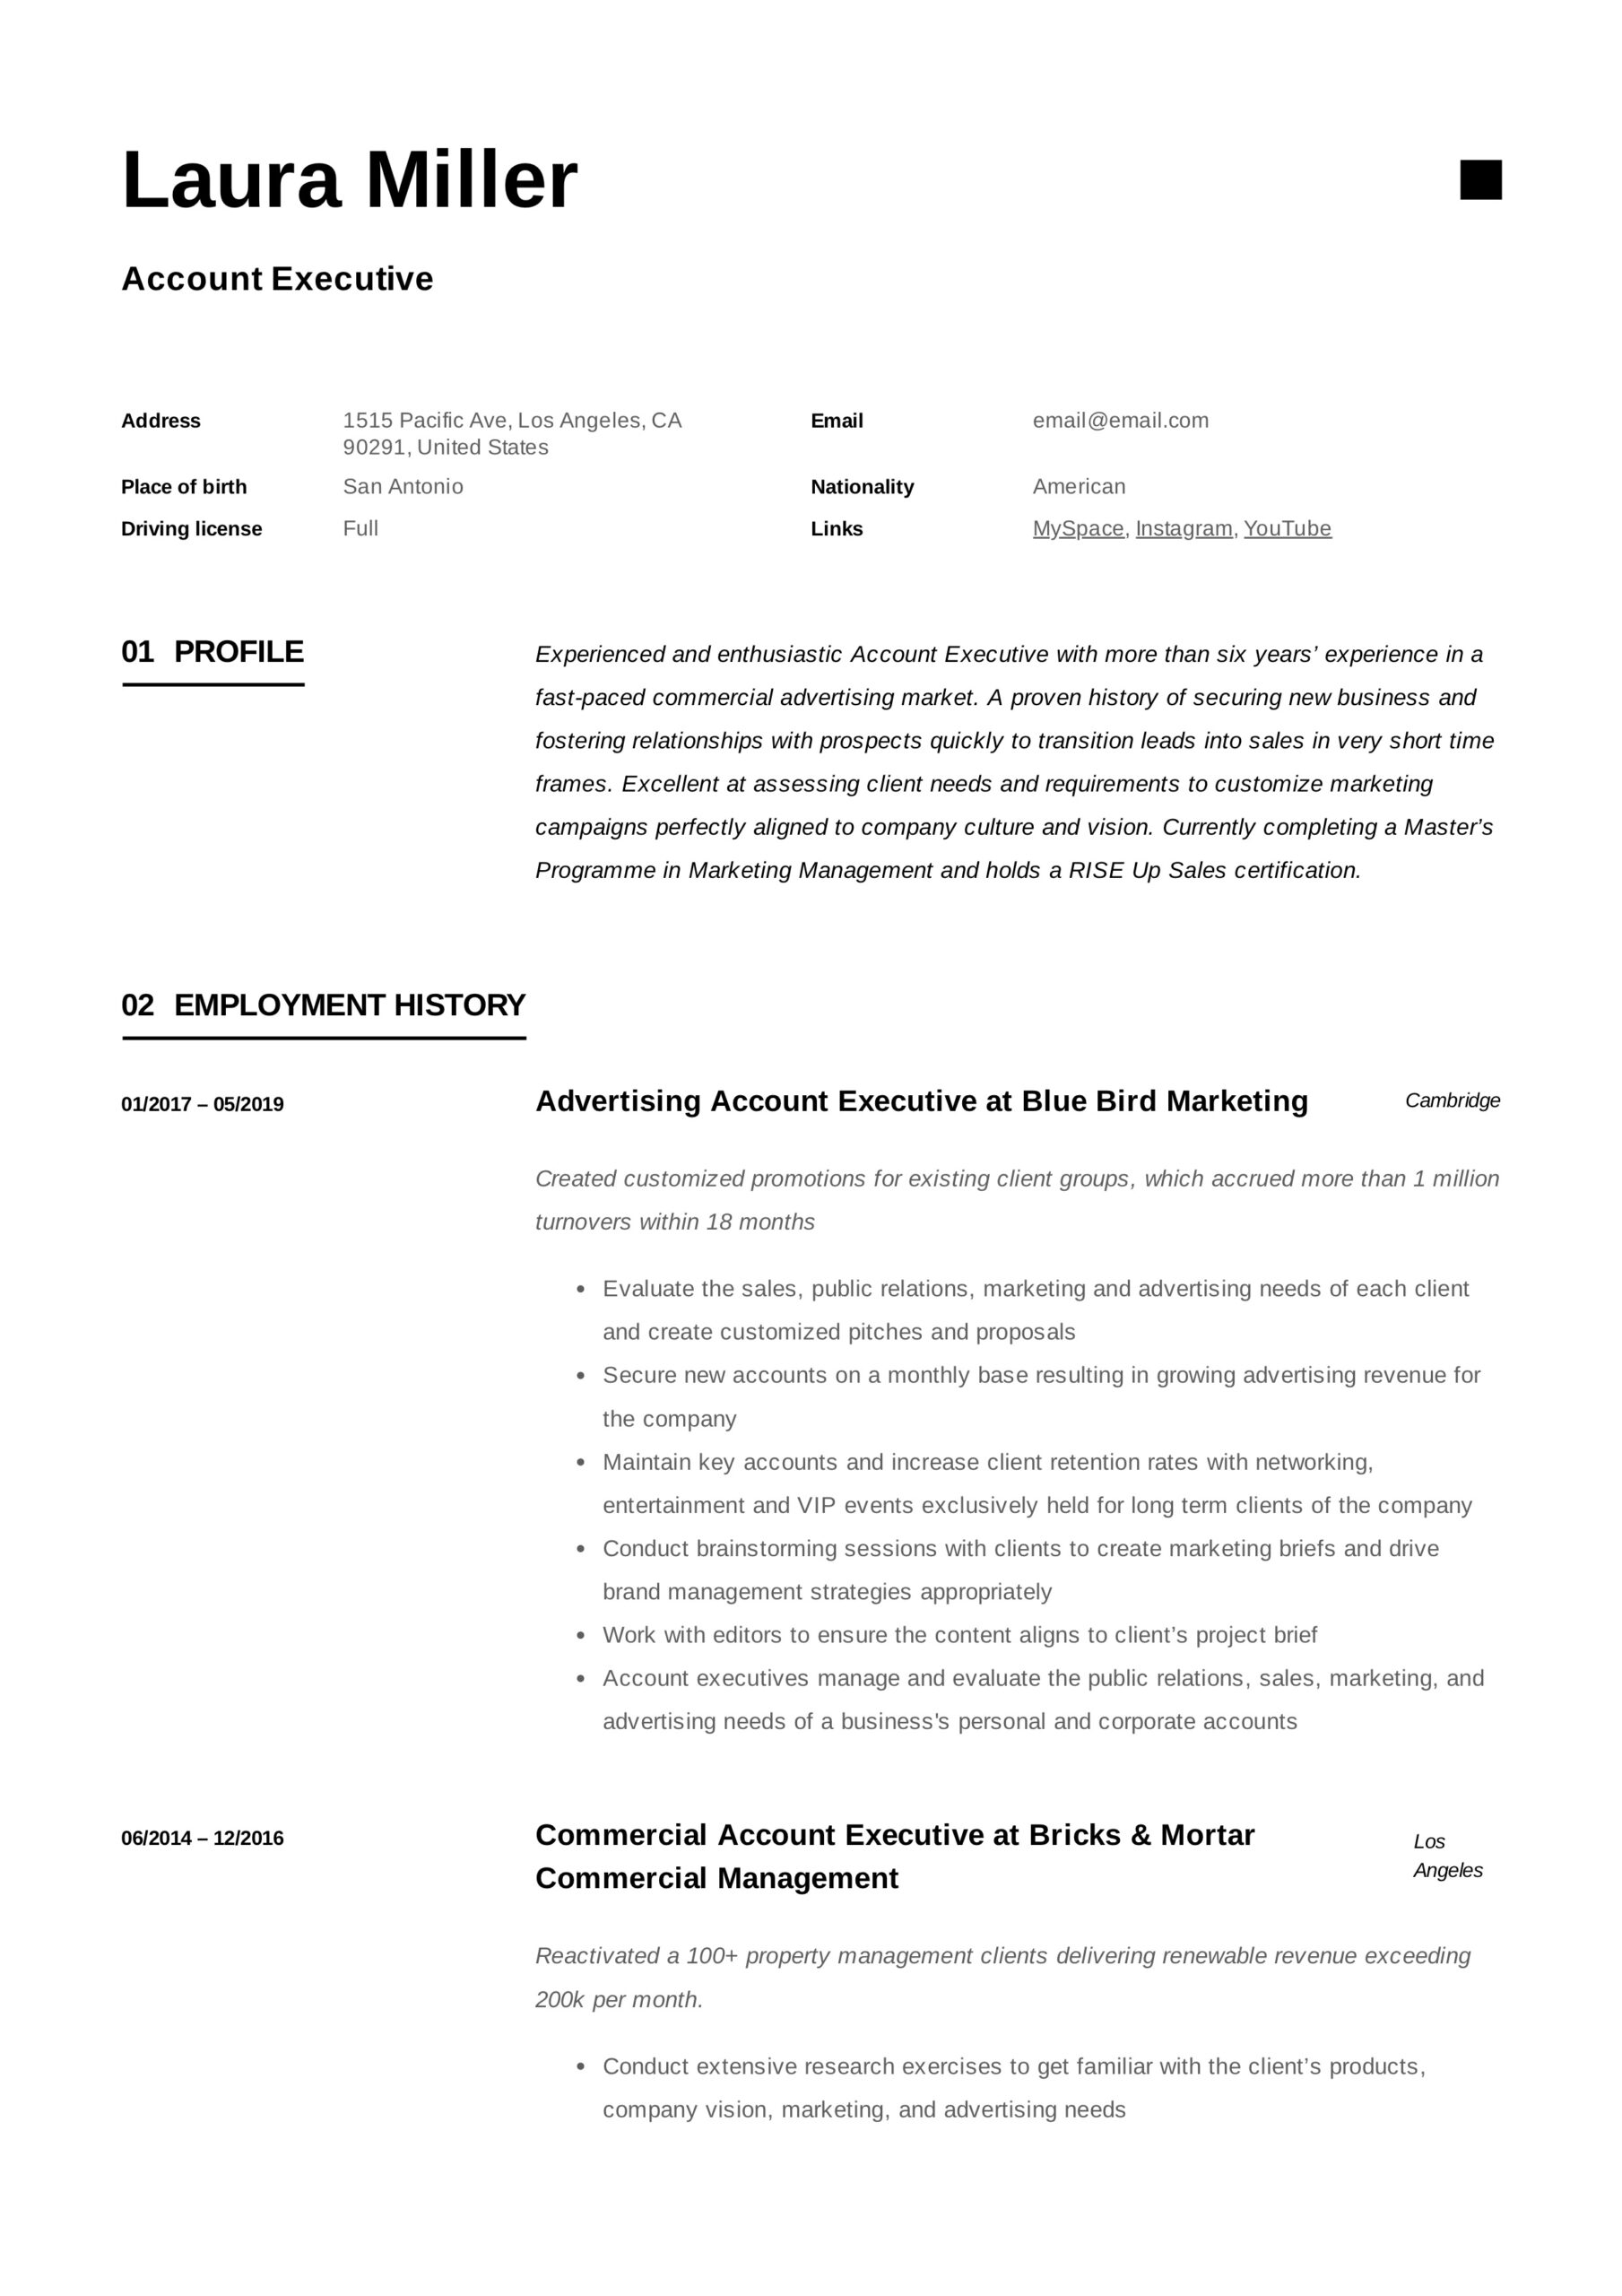 account executive resume writing guide templates pdf keywords example band manager sample Resume Account Executive Resume Keywords